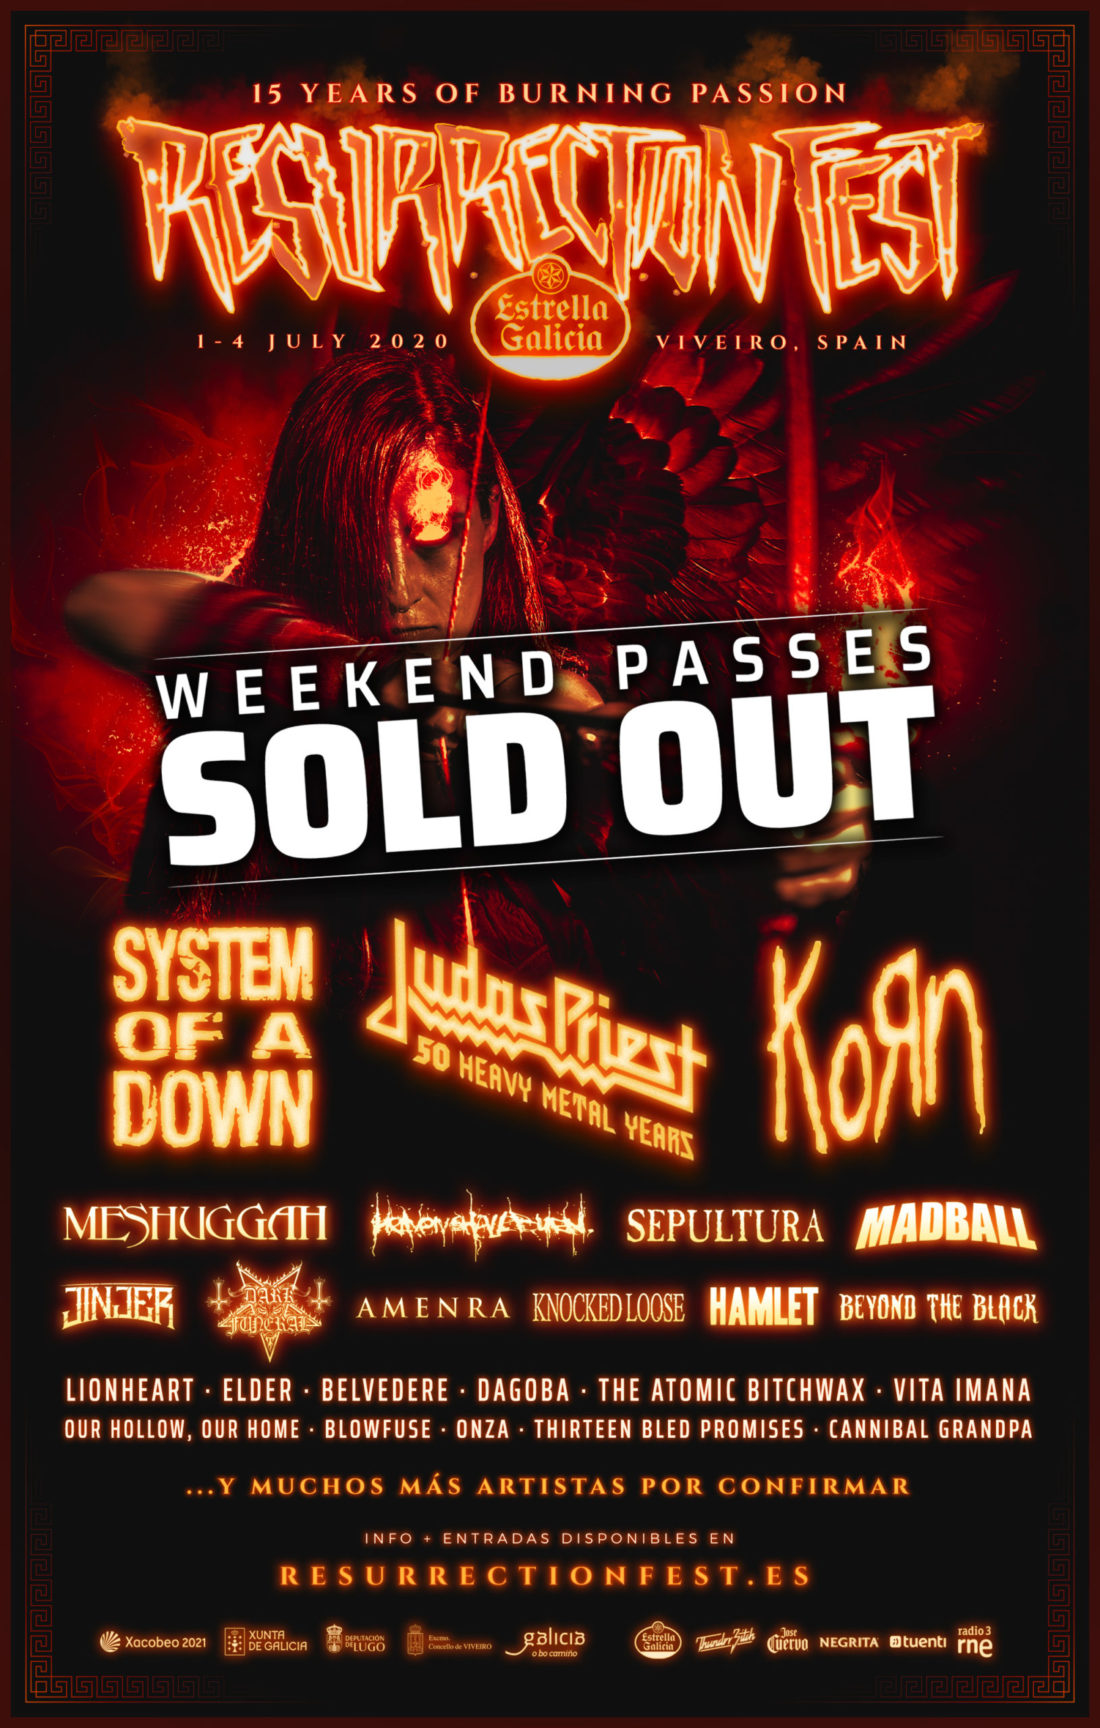 RESURRECTION FEST ESTRELLA GALICIA 2020 IS NOW SOLD-OUT, THANK YOU VERY MUCH!